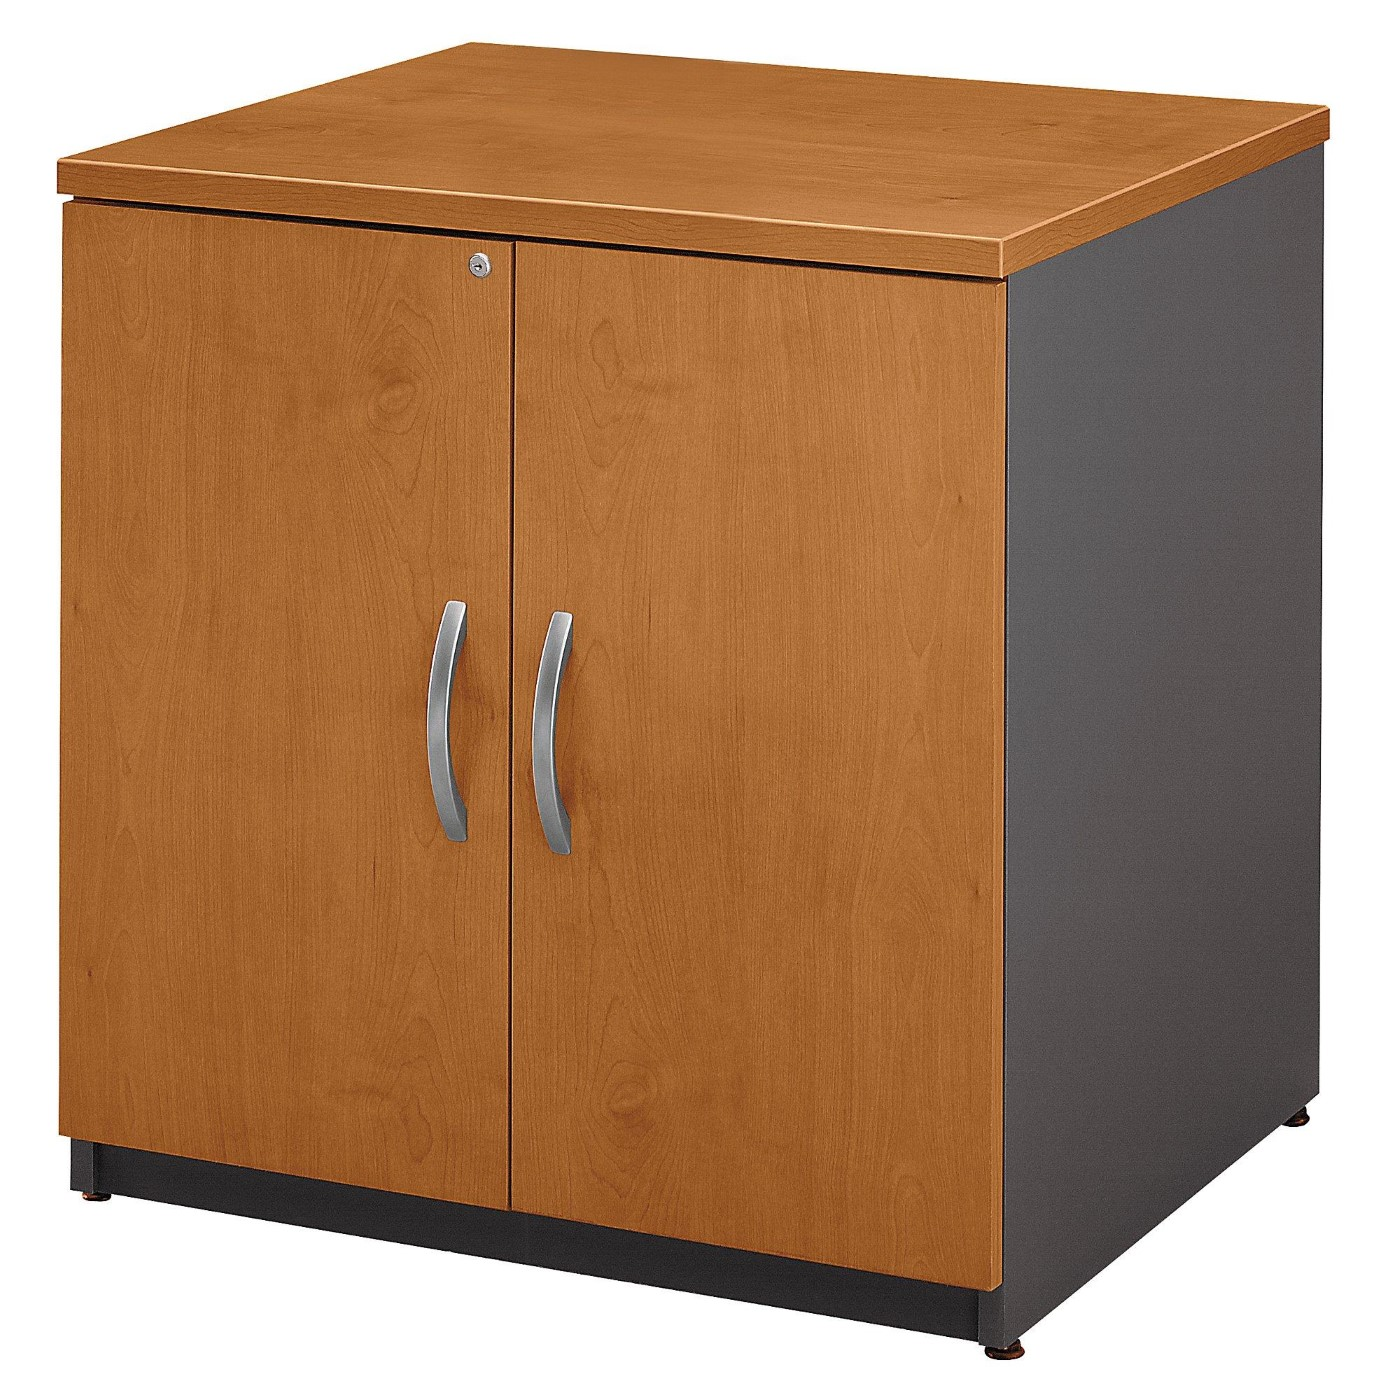 <font color=#c60><b>BUSH BUSINESS FURNITURE SERIES C 30W STORAGE CABINET. FREE SHIPPING</font></b>